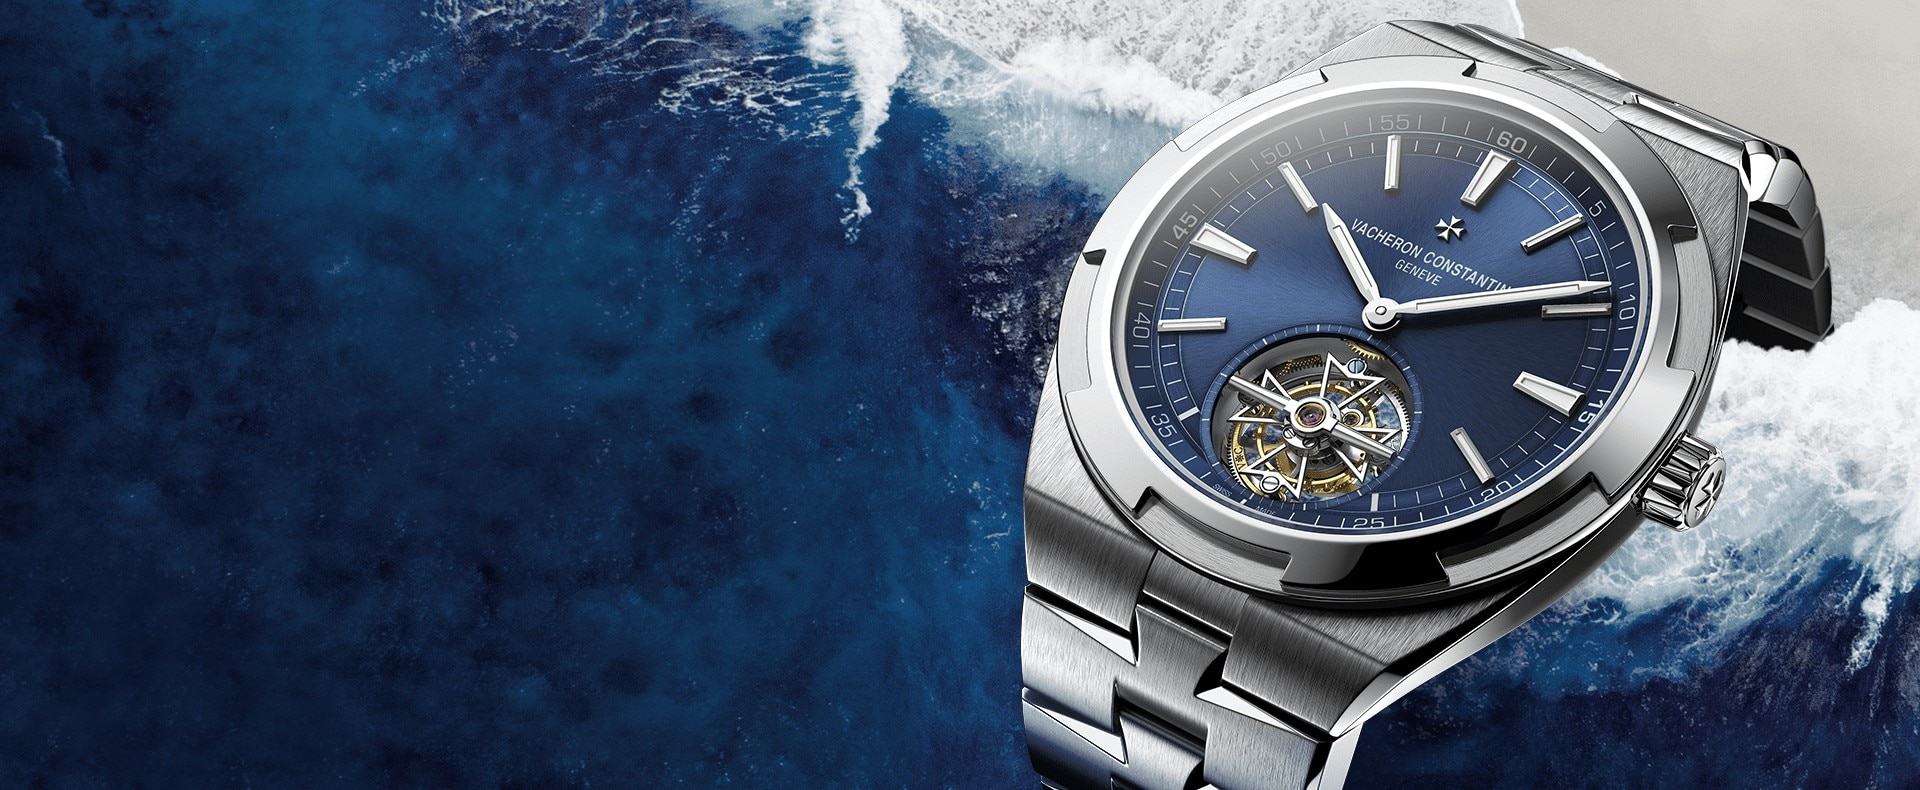 Vacheron Constantin - Luxury Watches and Fine Watches - SIHH 2019